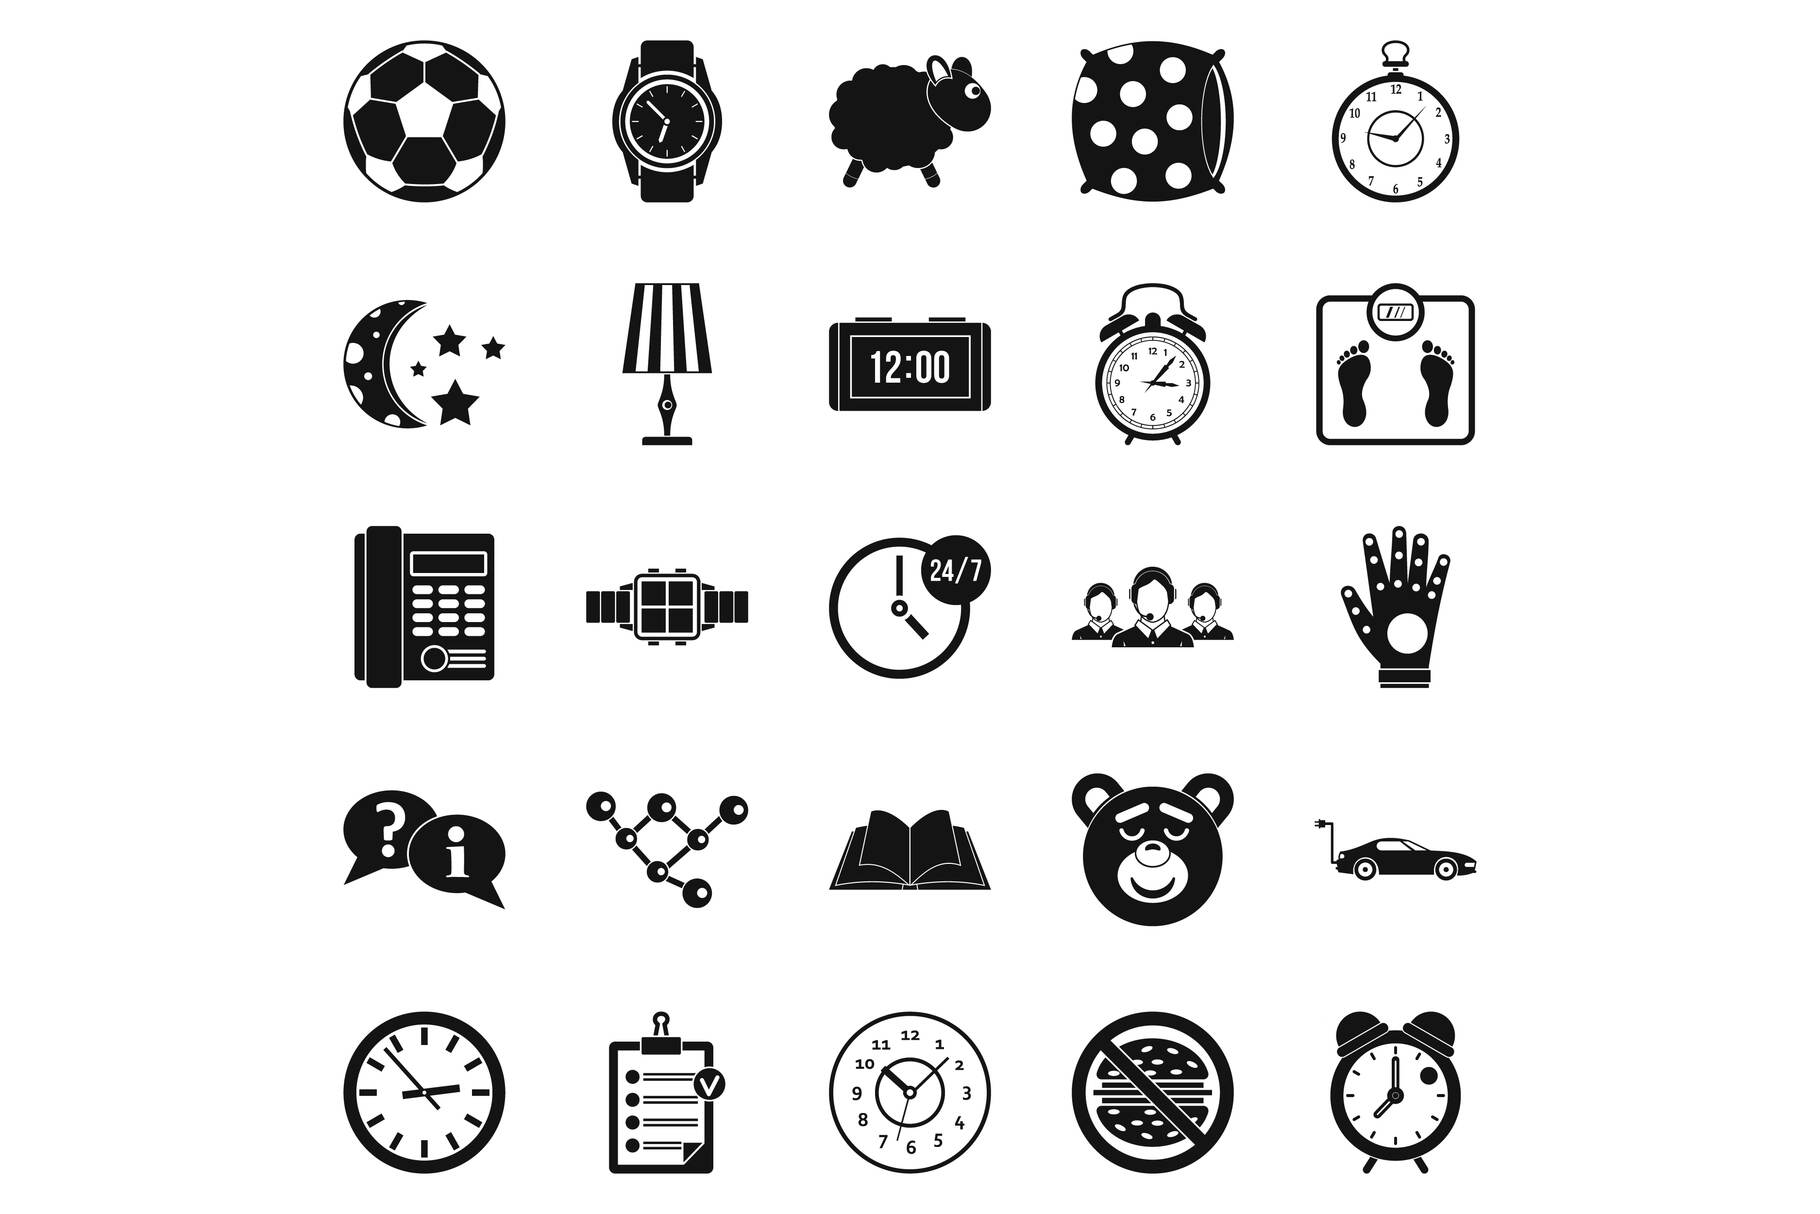 Watch icons set, simple style example image 1